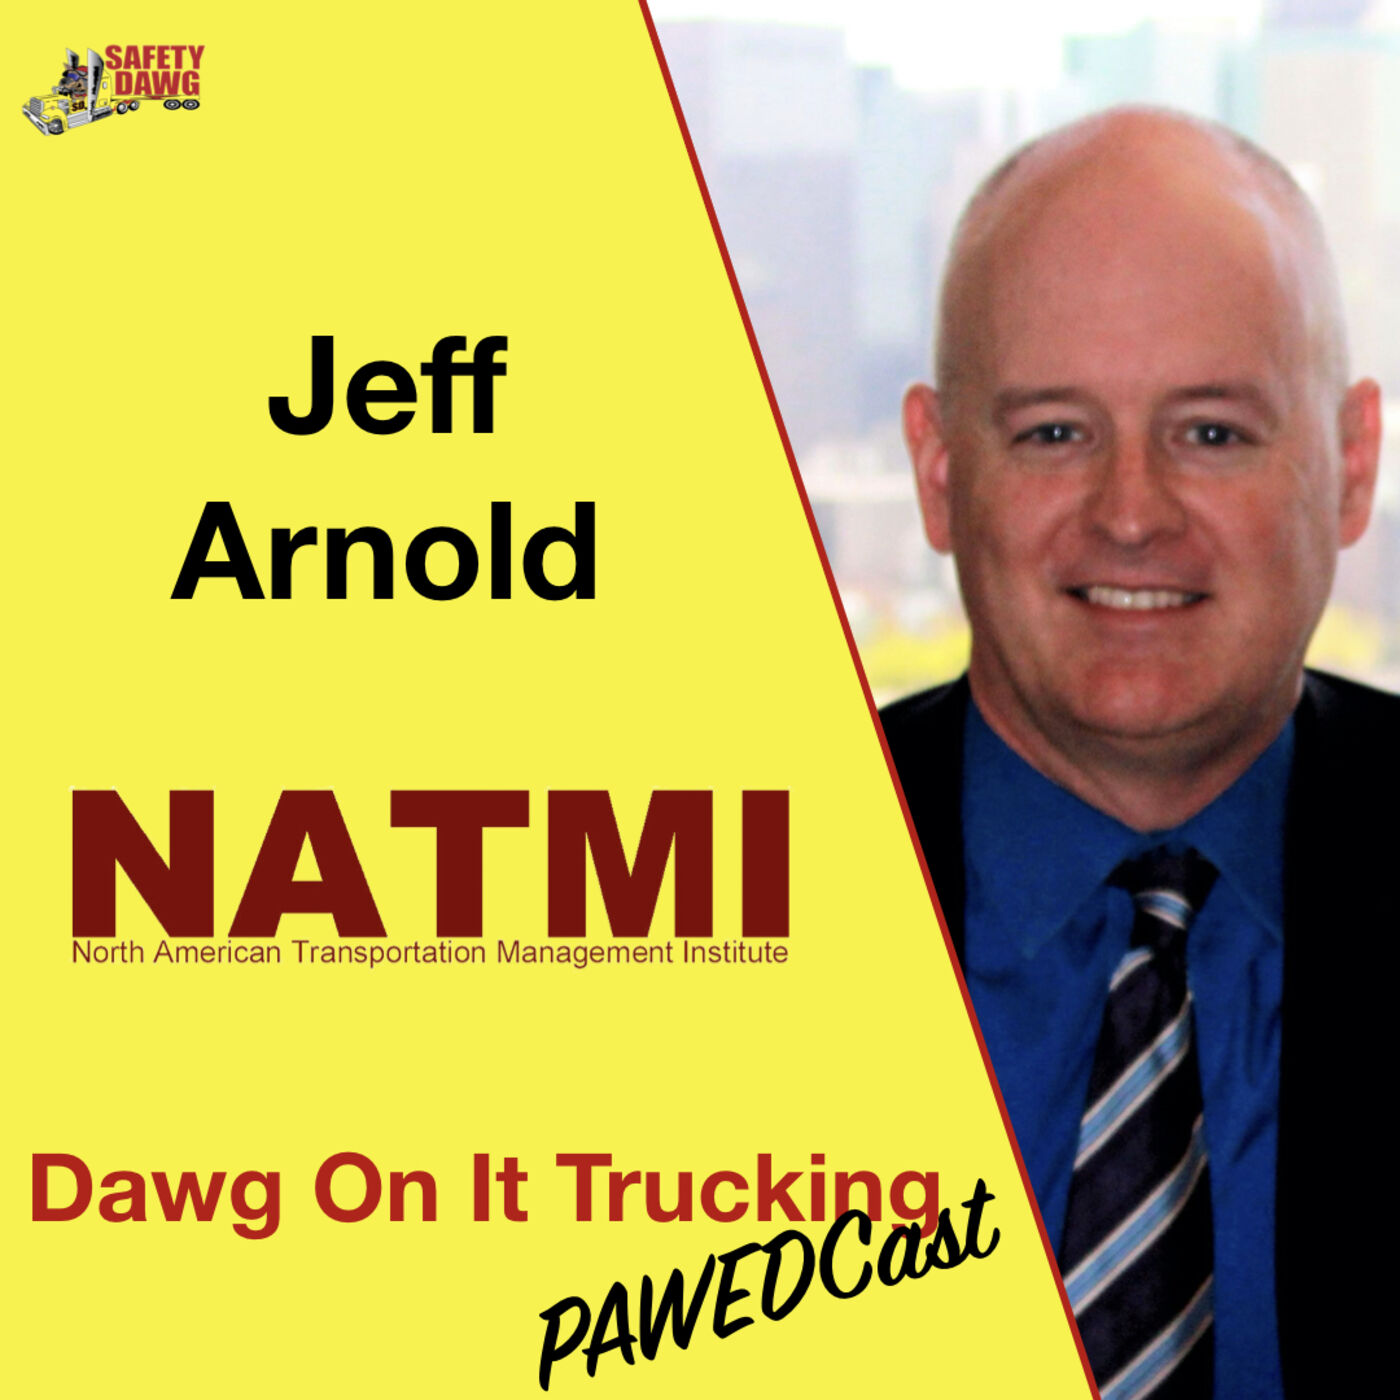 Jeff Arnold of NATMI on the Dawg On It Trucking Pawedcast, Episode #10